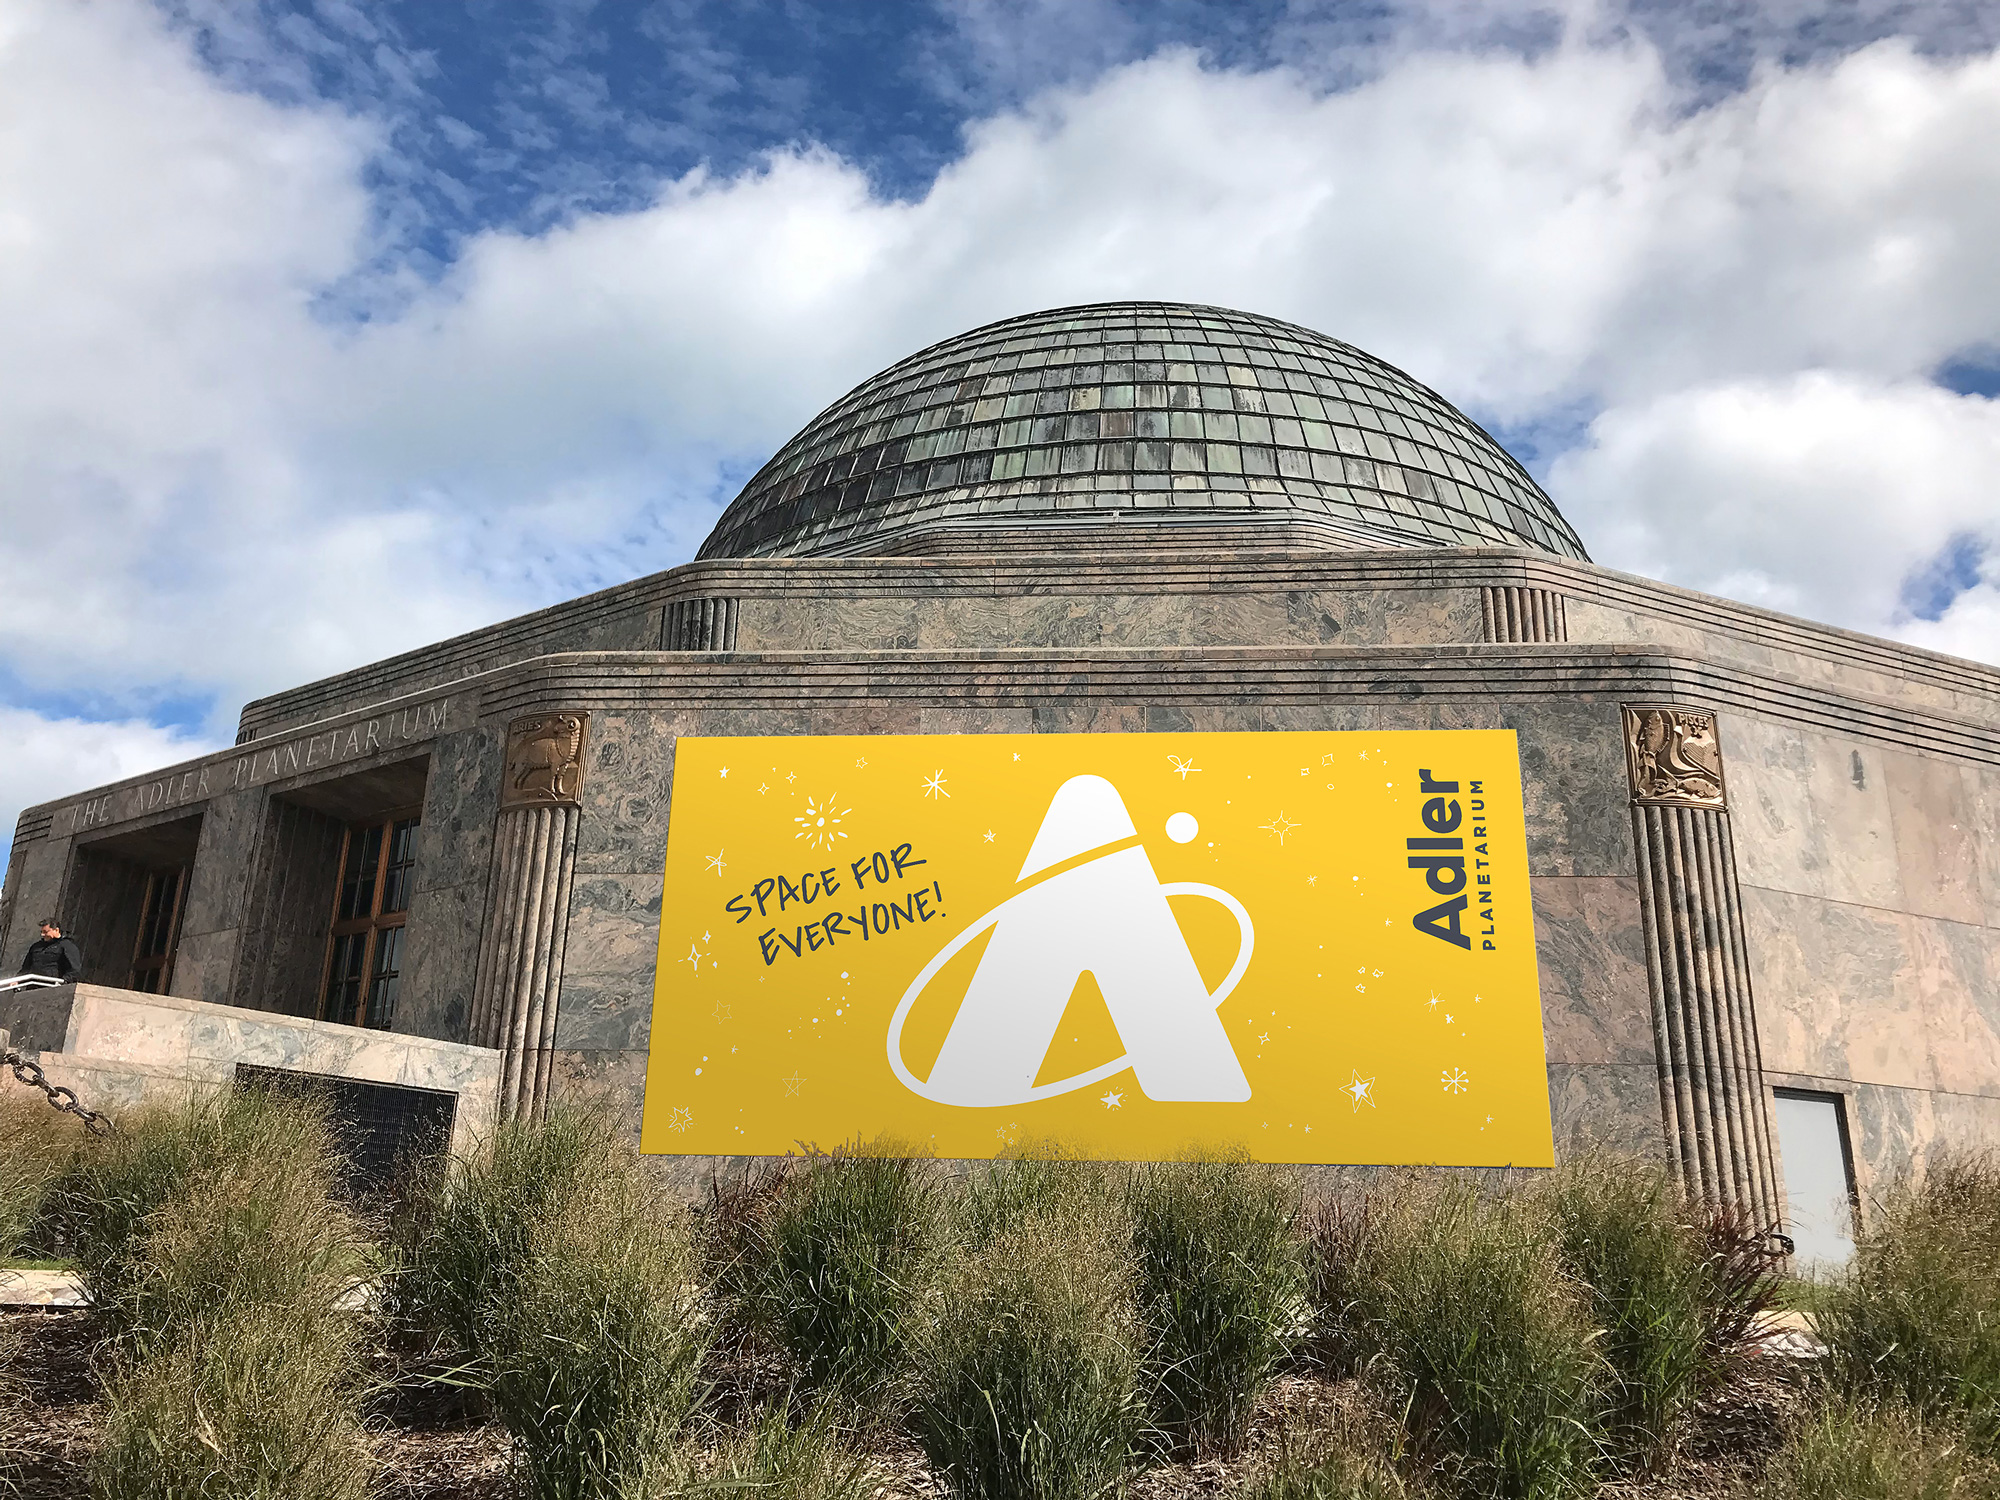 New Logo and Identity for Adler Planetarium by Pause for Thought and The Change Project